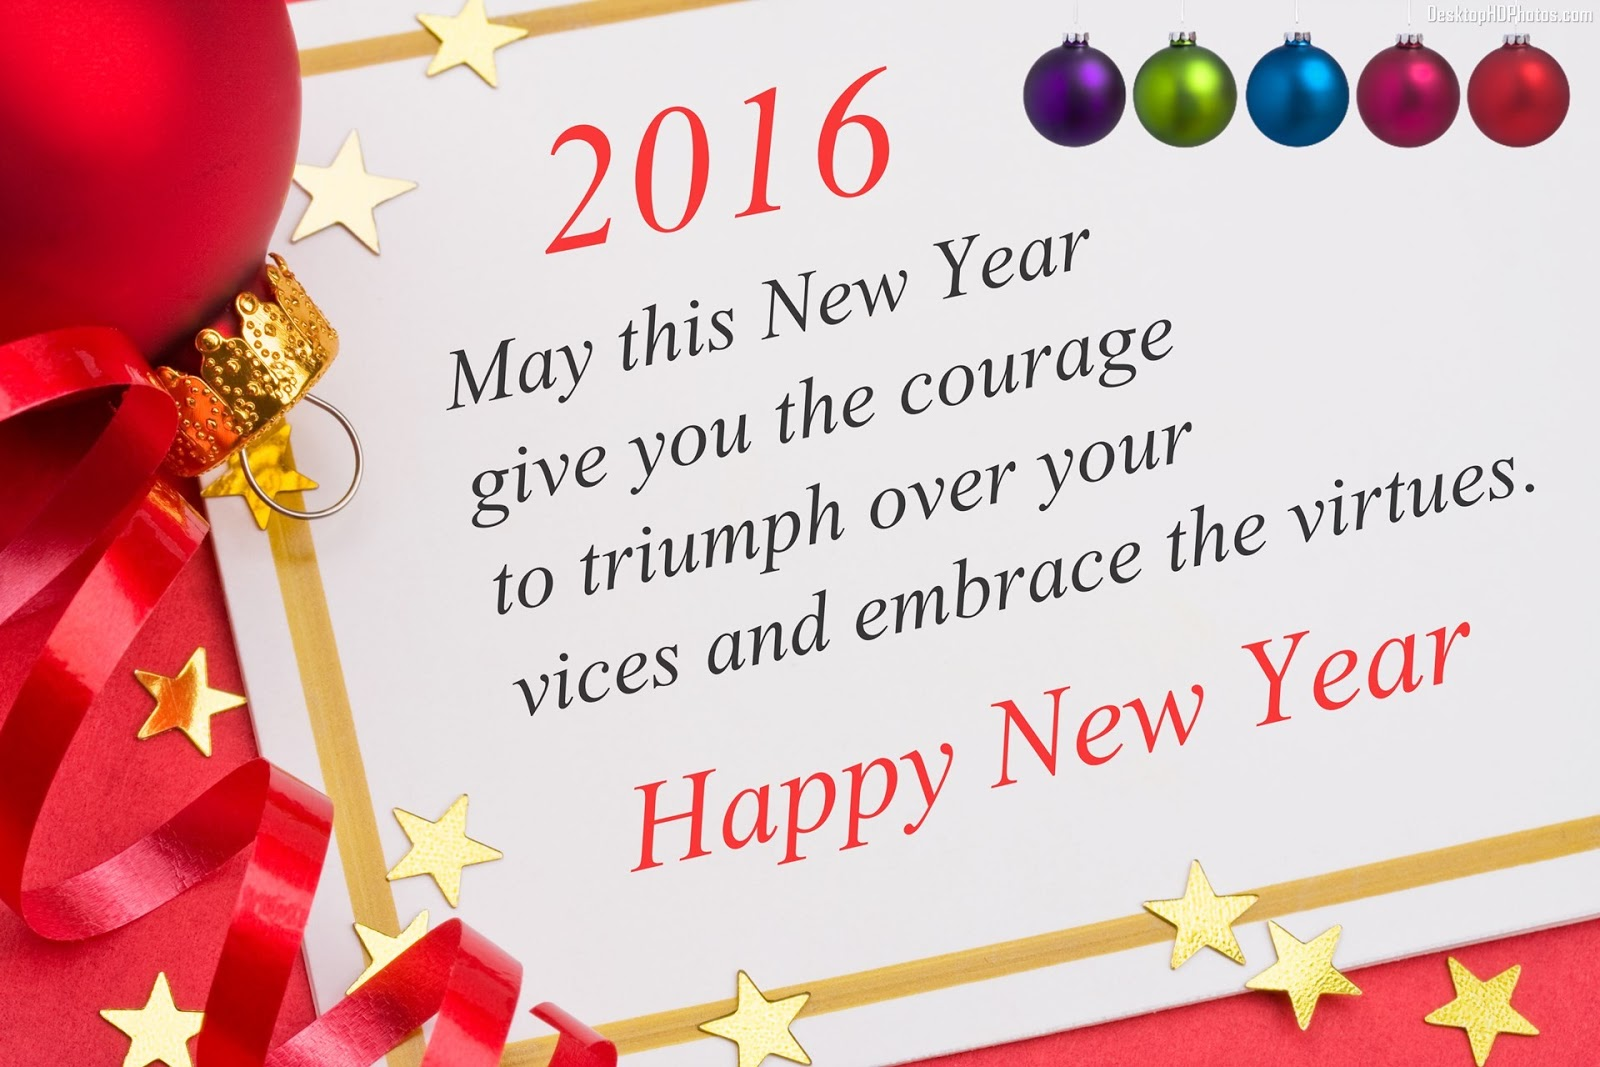 new year messages 2016 ~ sports news